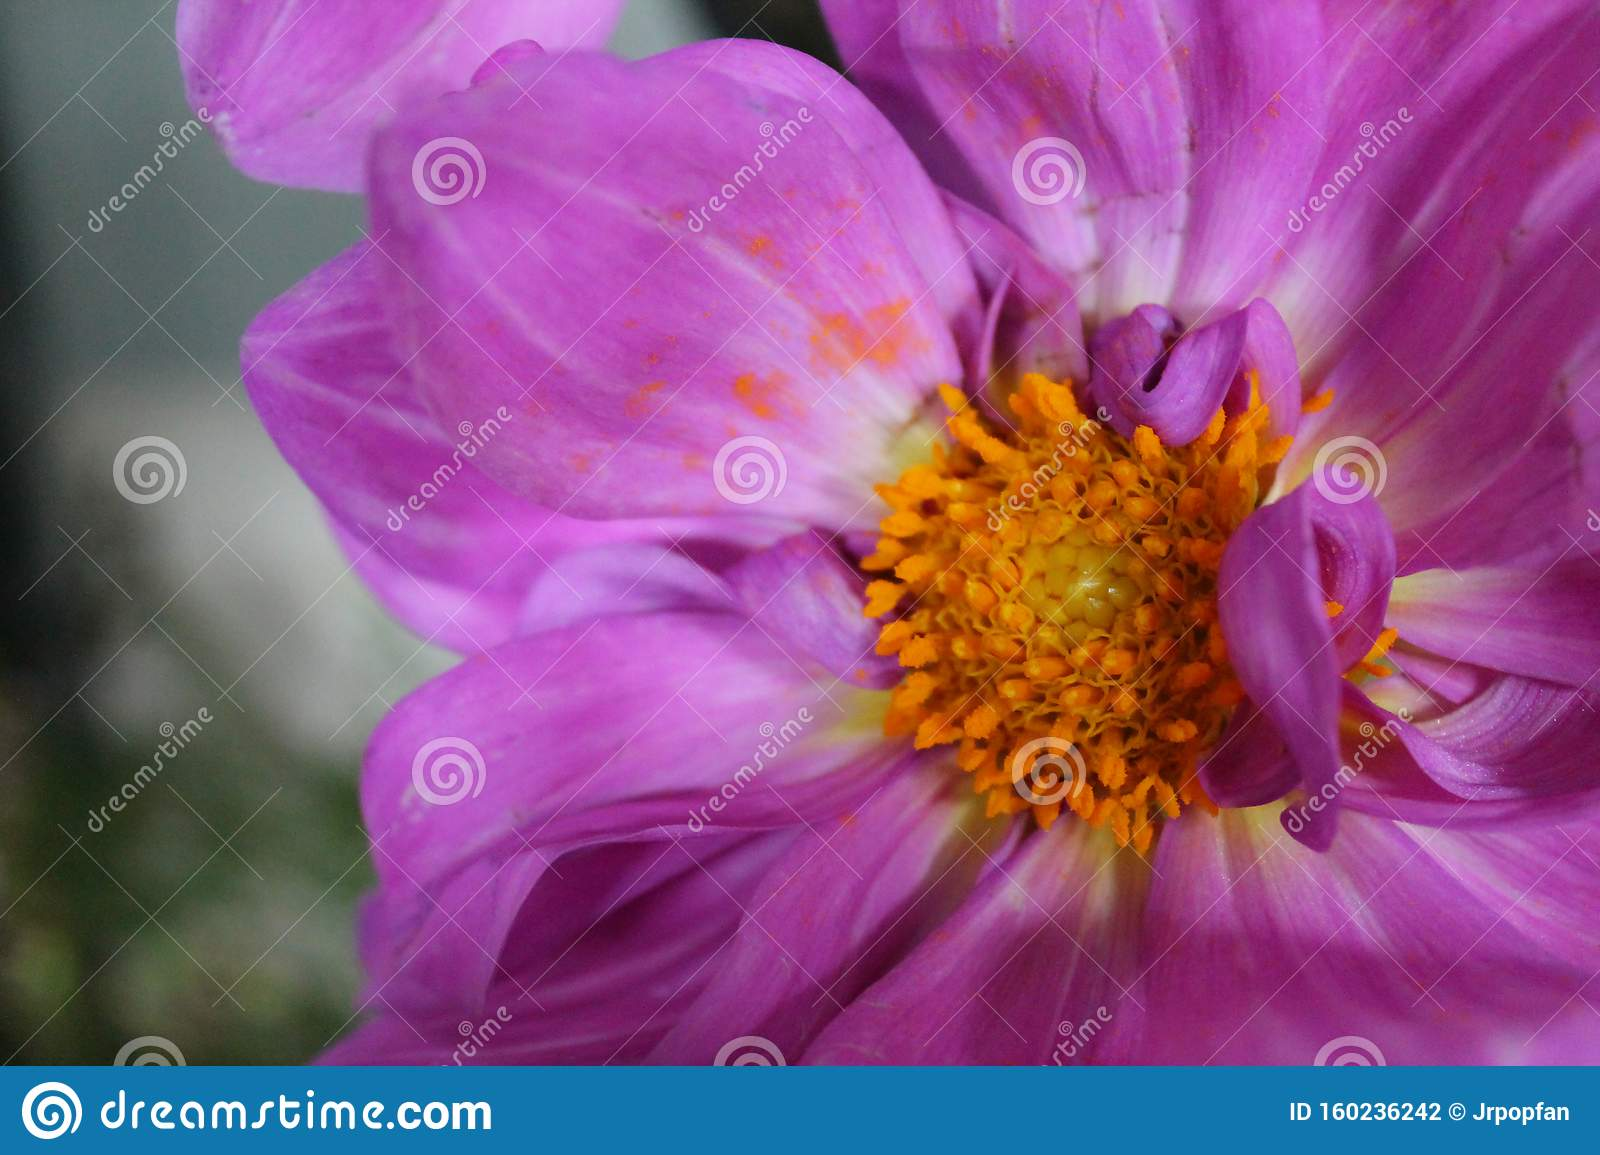 Hot Pink Flower With Orange Center Stock Photo Image Of